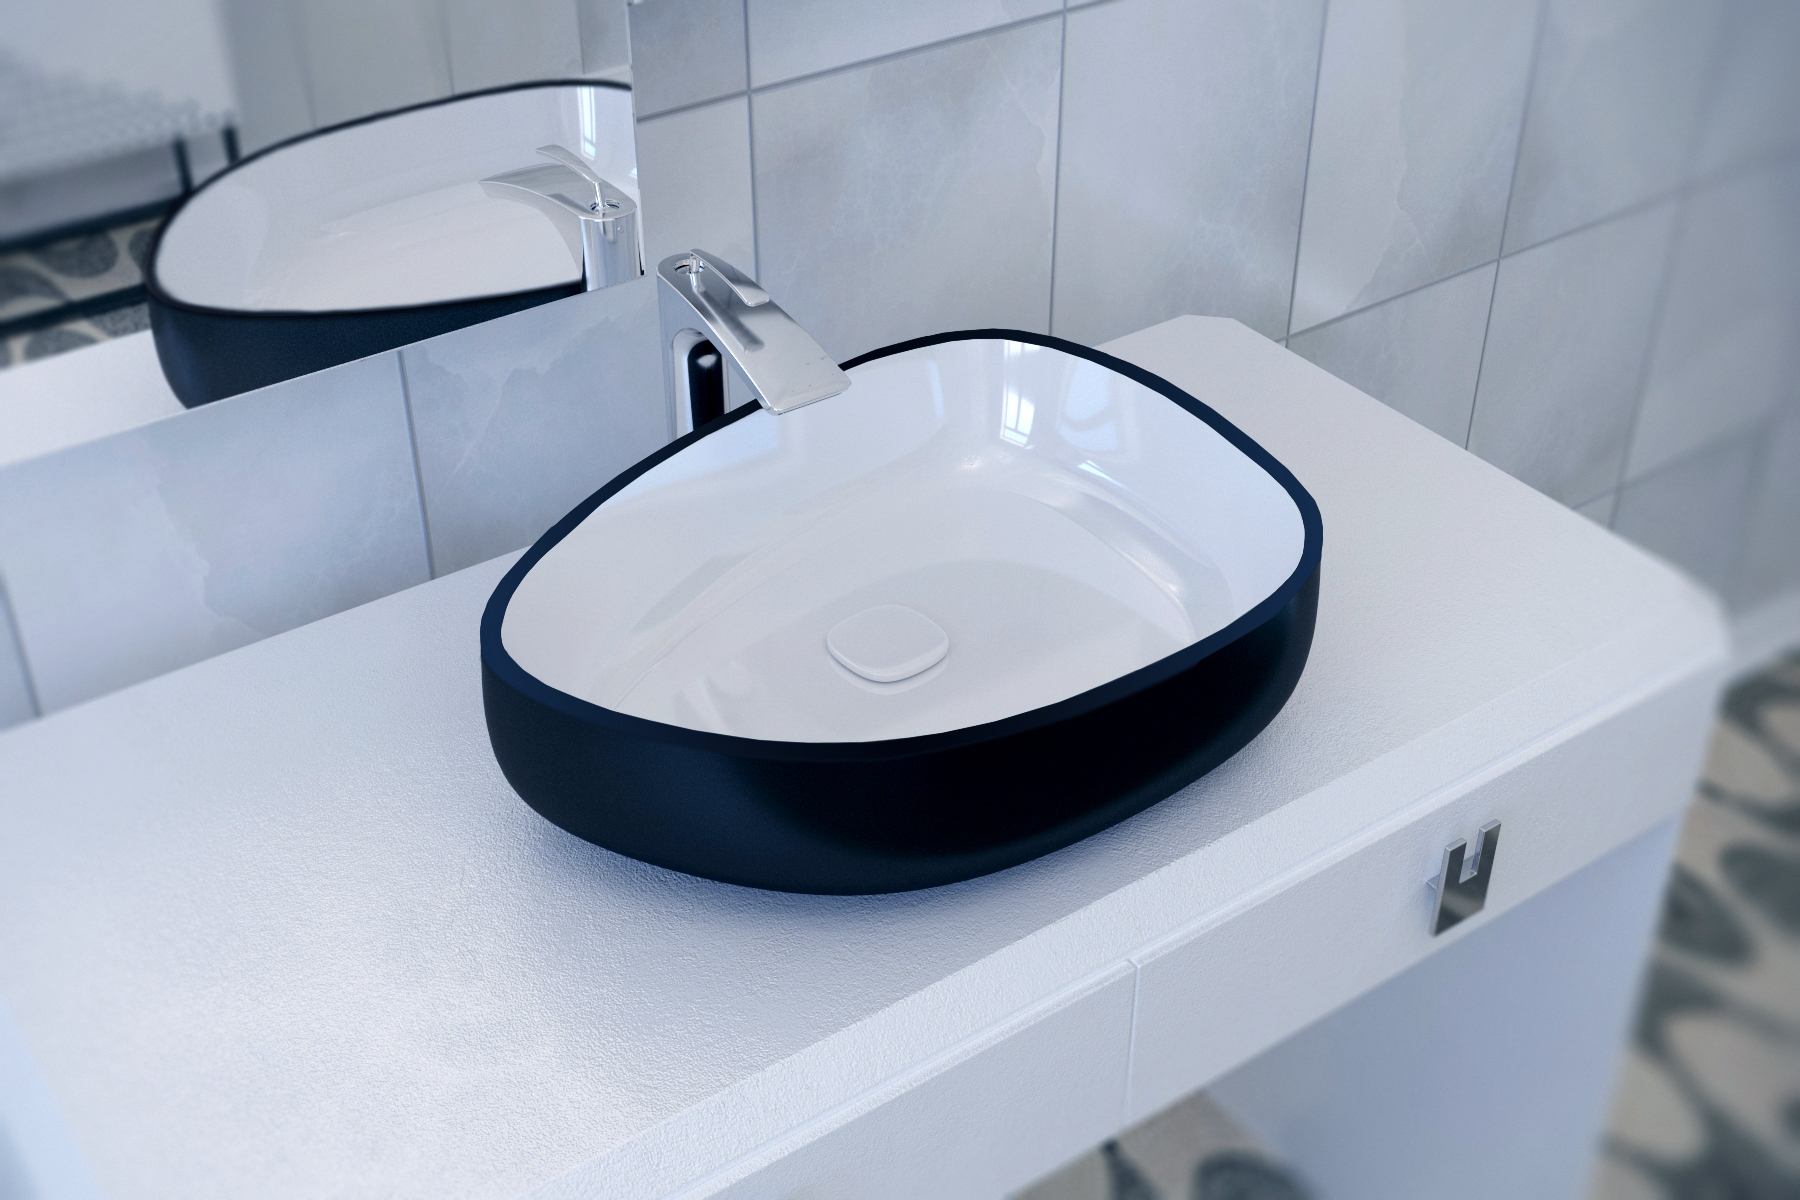 Bathroom sink dreamy person beautiful vessel bathroom sinks Black vessel bathroom sink